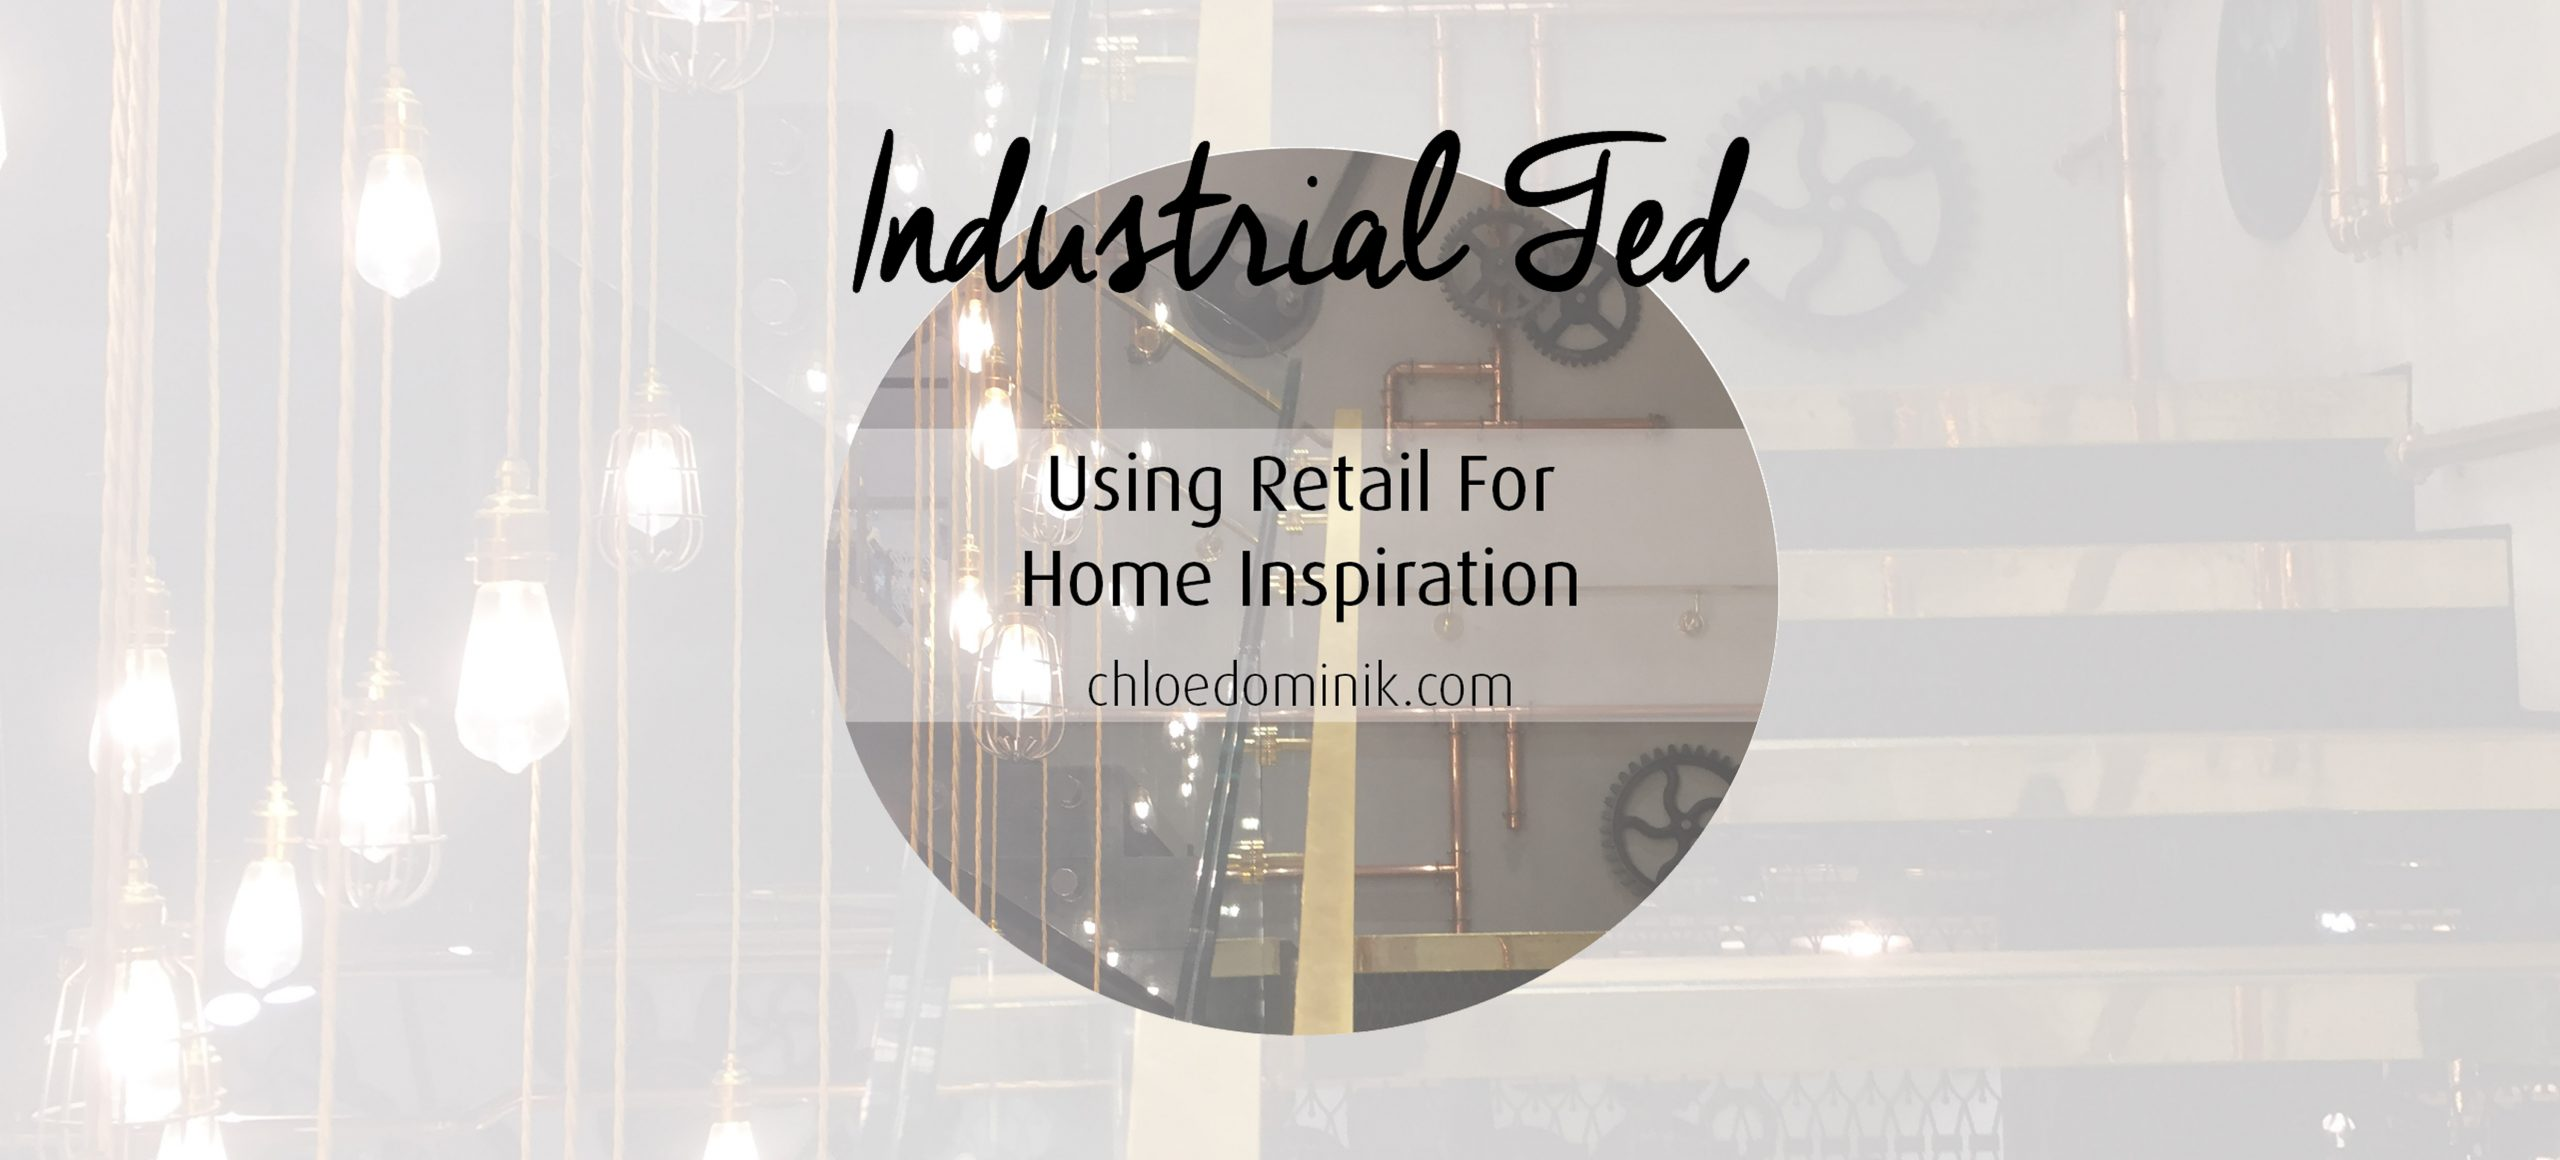 Industrial Ted: Using Retail For Home Inspiration